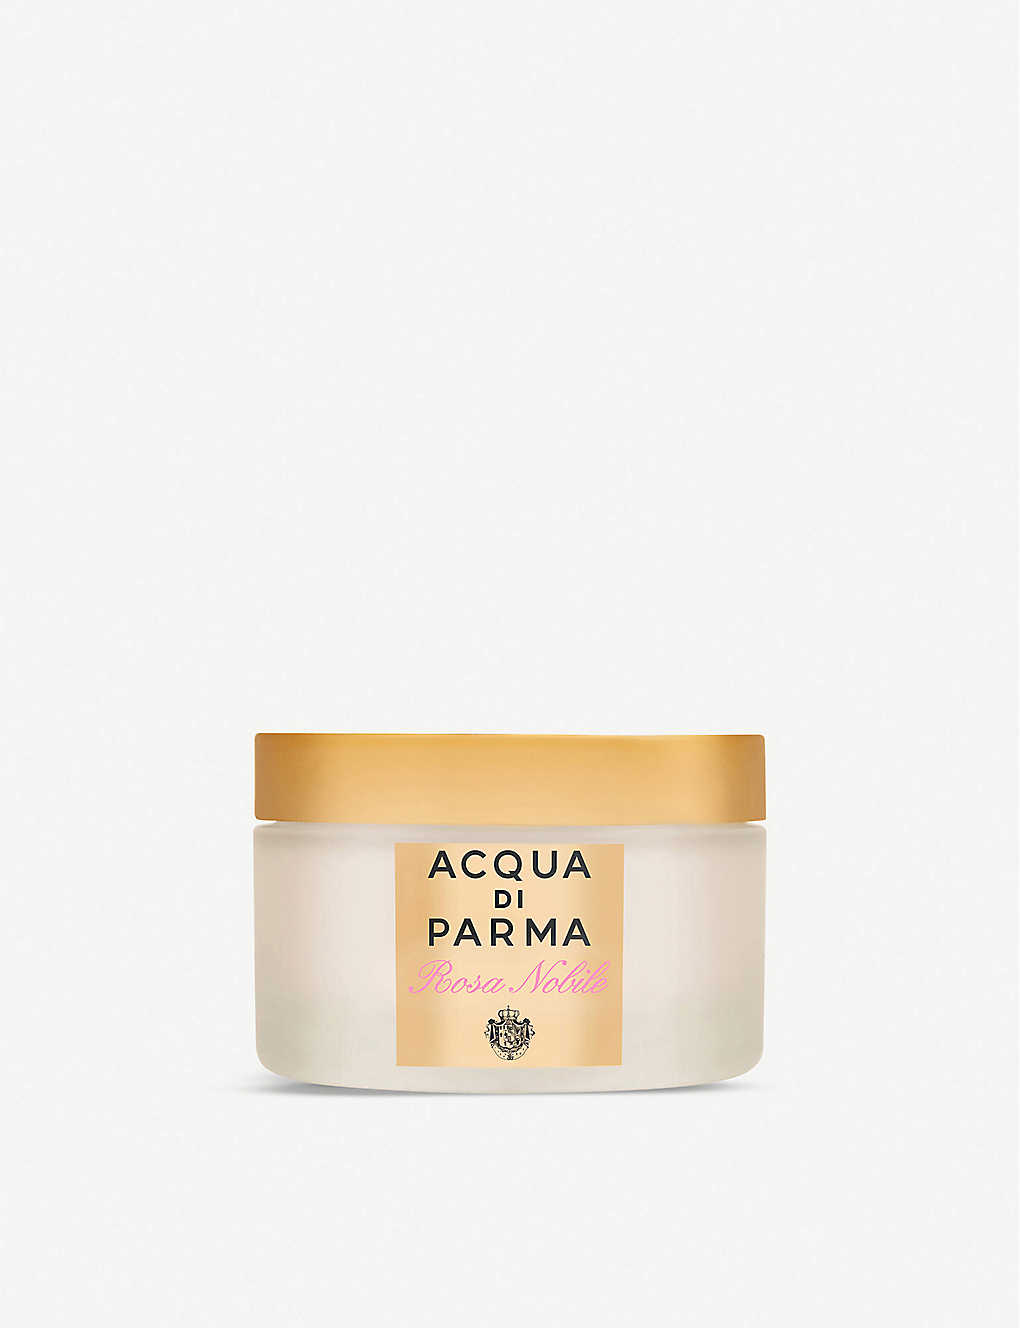 ACQUA DI PARMA: Rosa Nobile body cream 150g